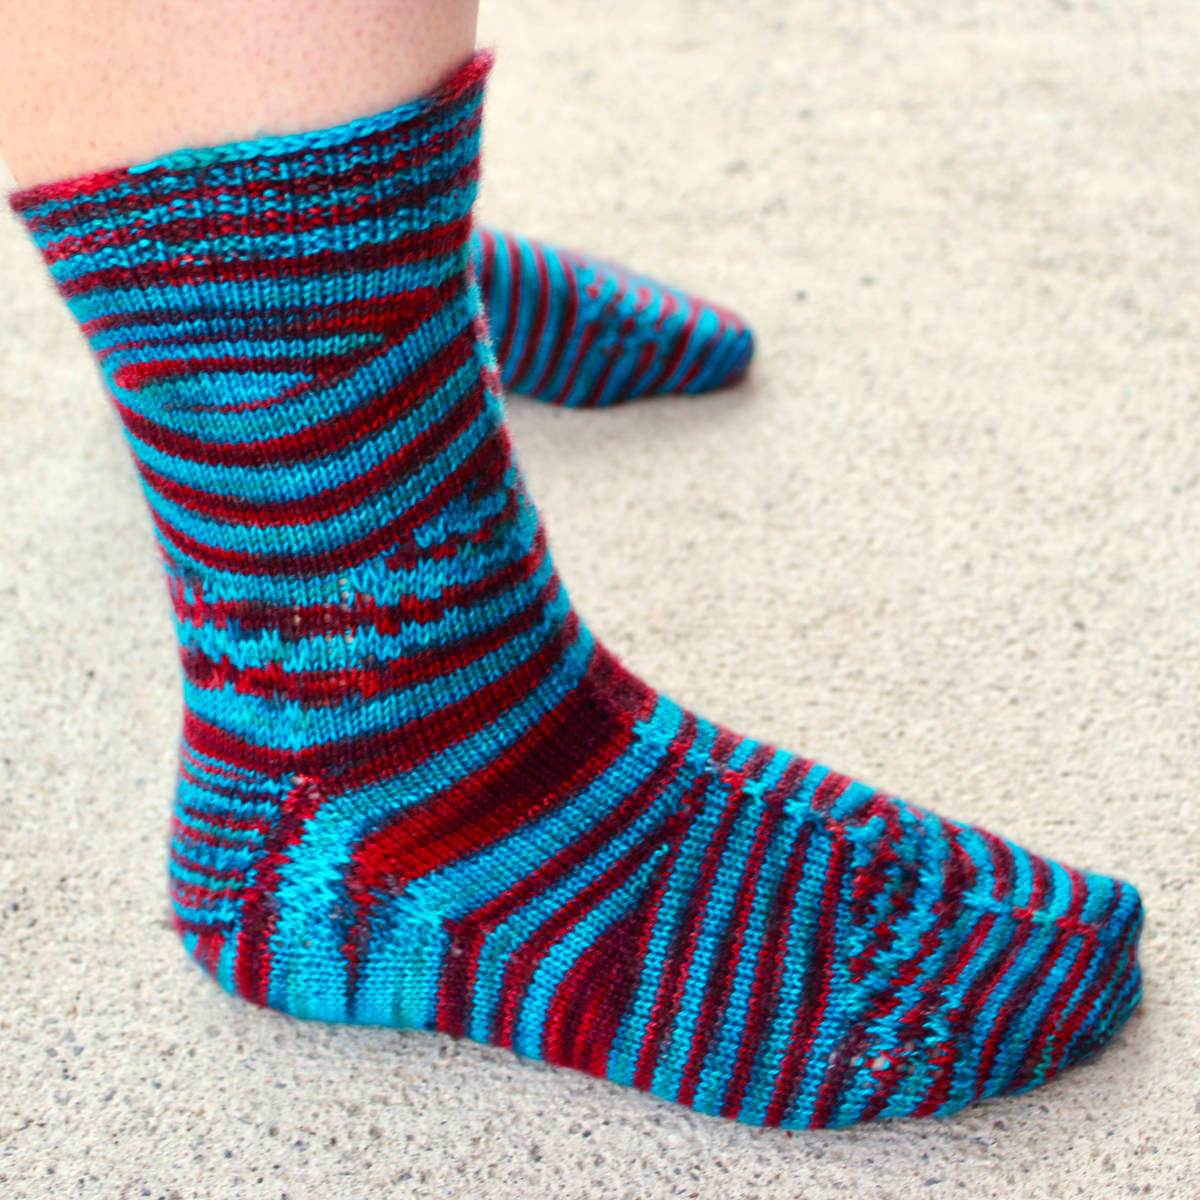 Side view of blue and red socks with shifting and pooling colour patterns and subtle surface texture.